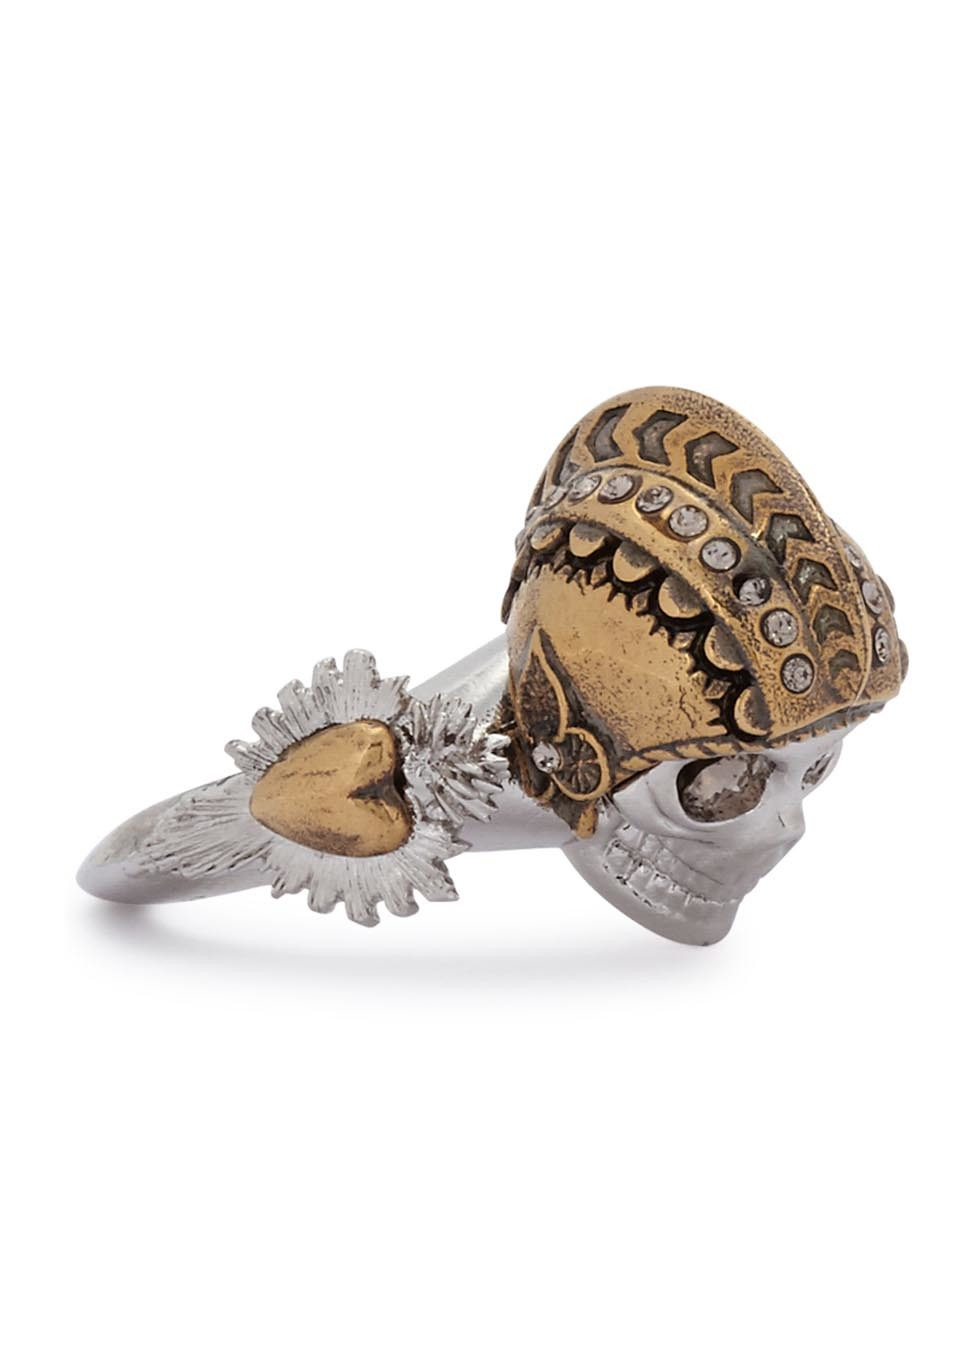 Armour Skull Silver Tone Ring - predominant colour: silver; secondary colour: gold; occasions: evening; style: cocktail; size: large/oversized; material: chain/metal; finish: plain; embellishment: crystals/glass; season: a/w 2016; wardrobe: event